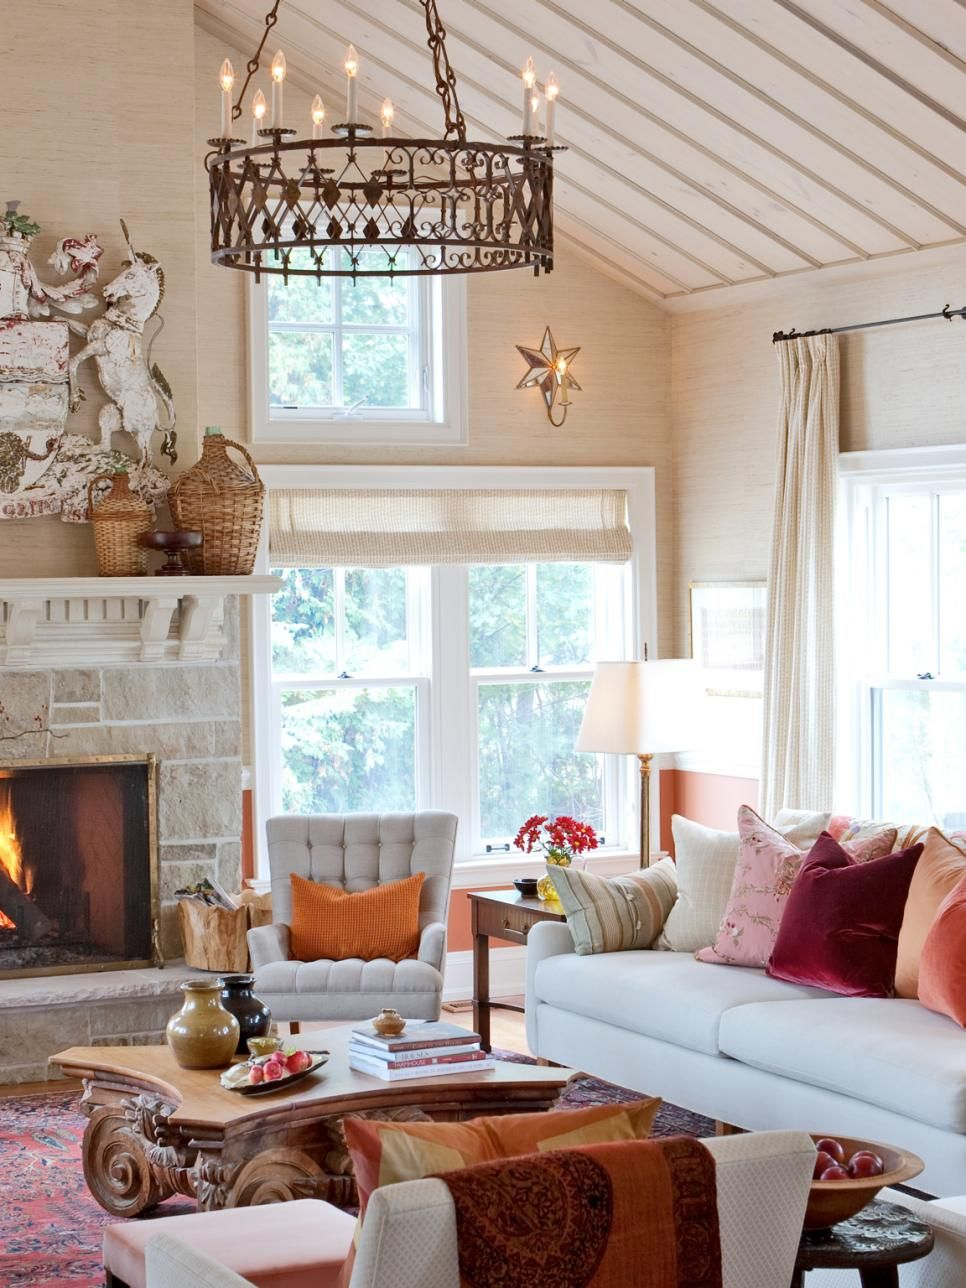 Exposed wood beams an ornate chandelier and